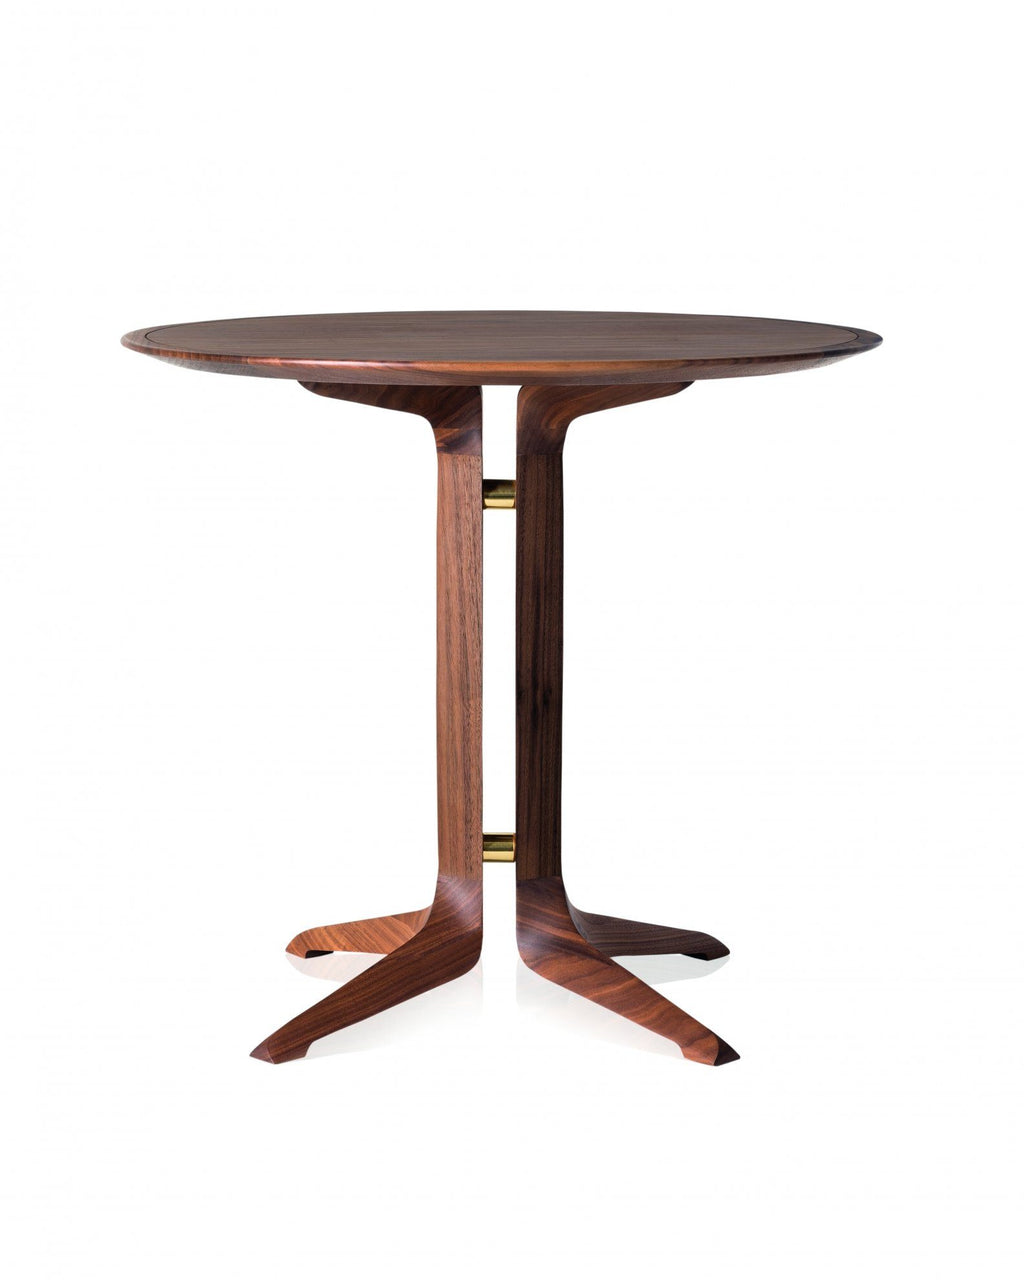 Legg side table by Jader Almeida